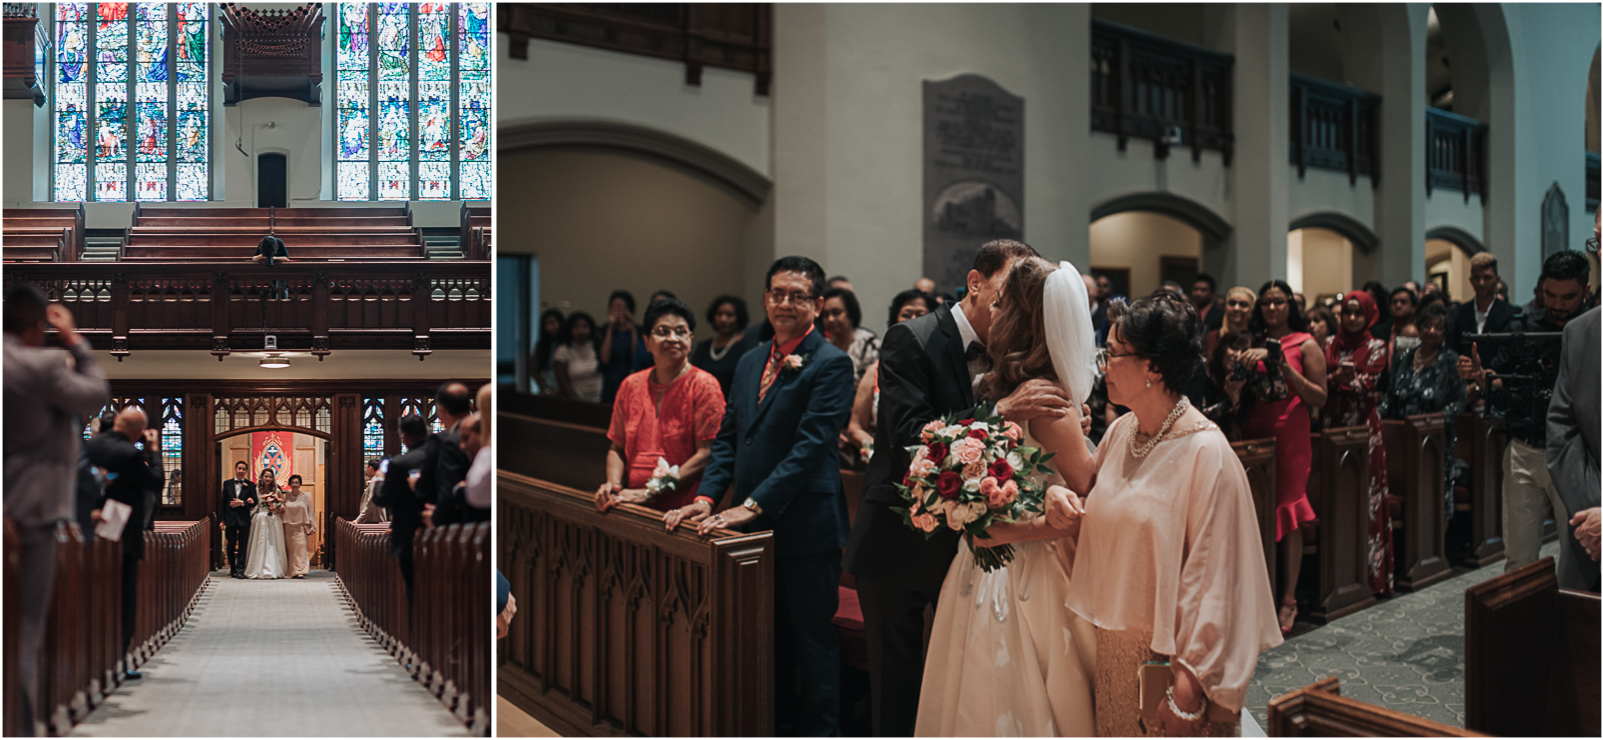 Bride walking down the aisle at the Timothy Memorial Church in Toronto